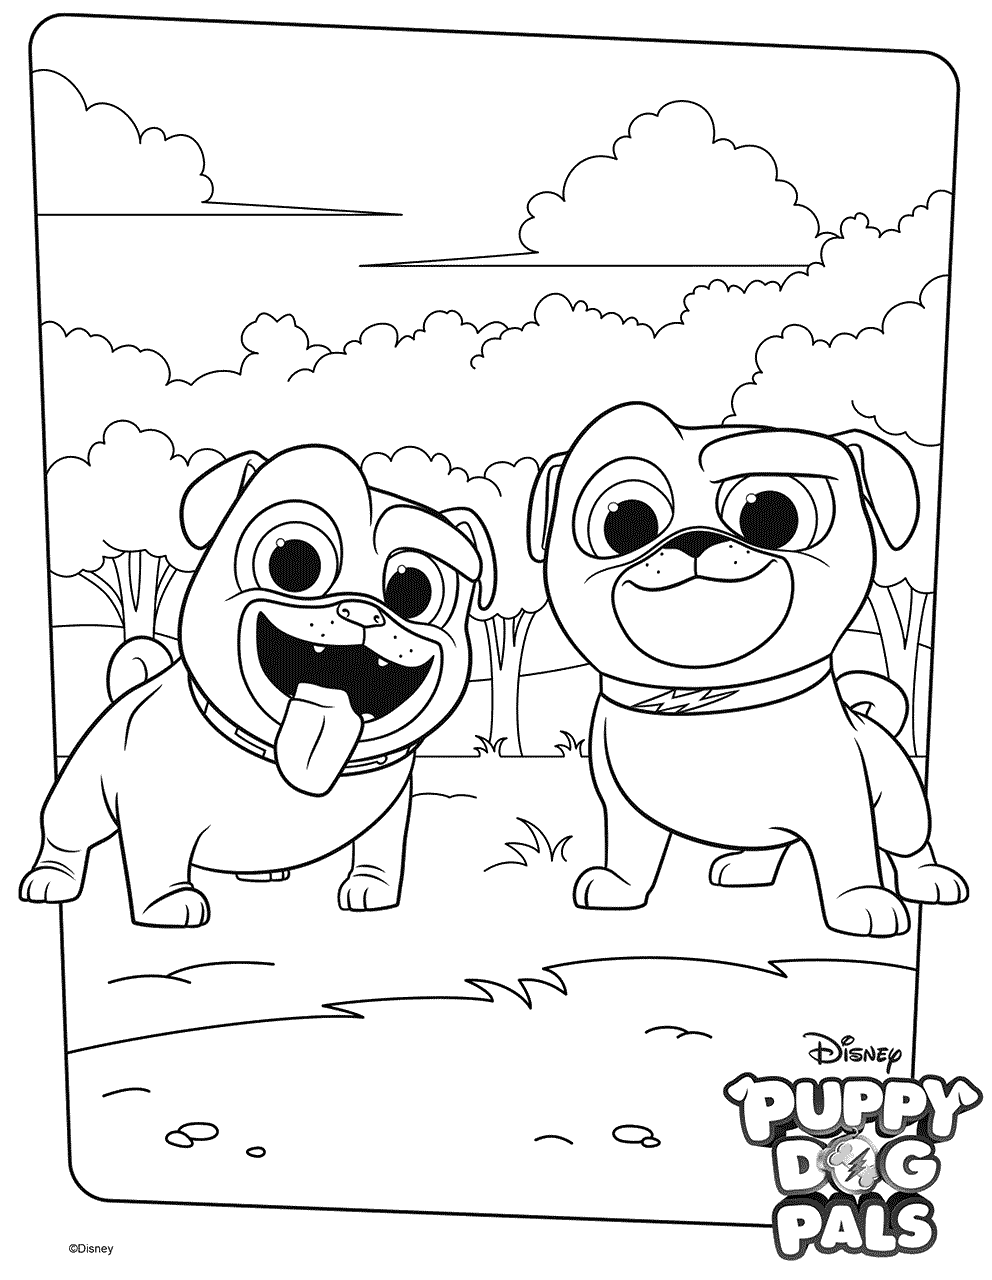 Puppy Dog Pals Coloring Pages Best Coloring Pages For Kids